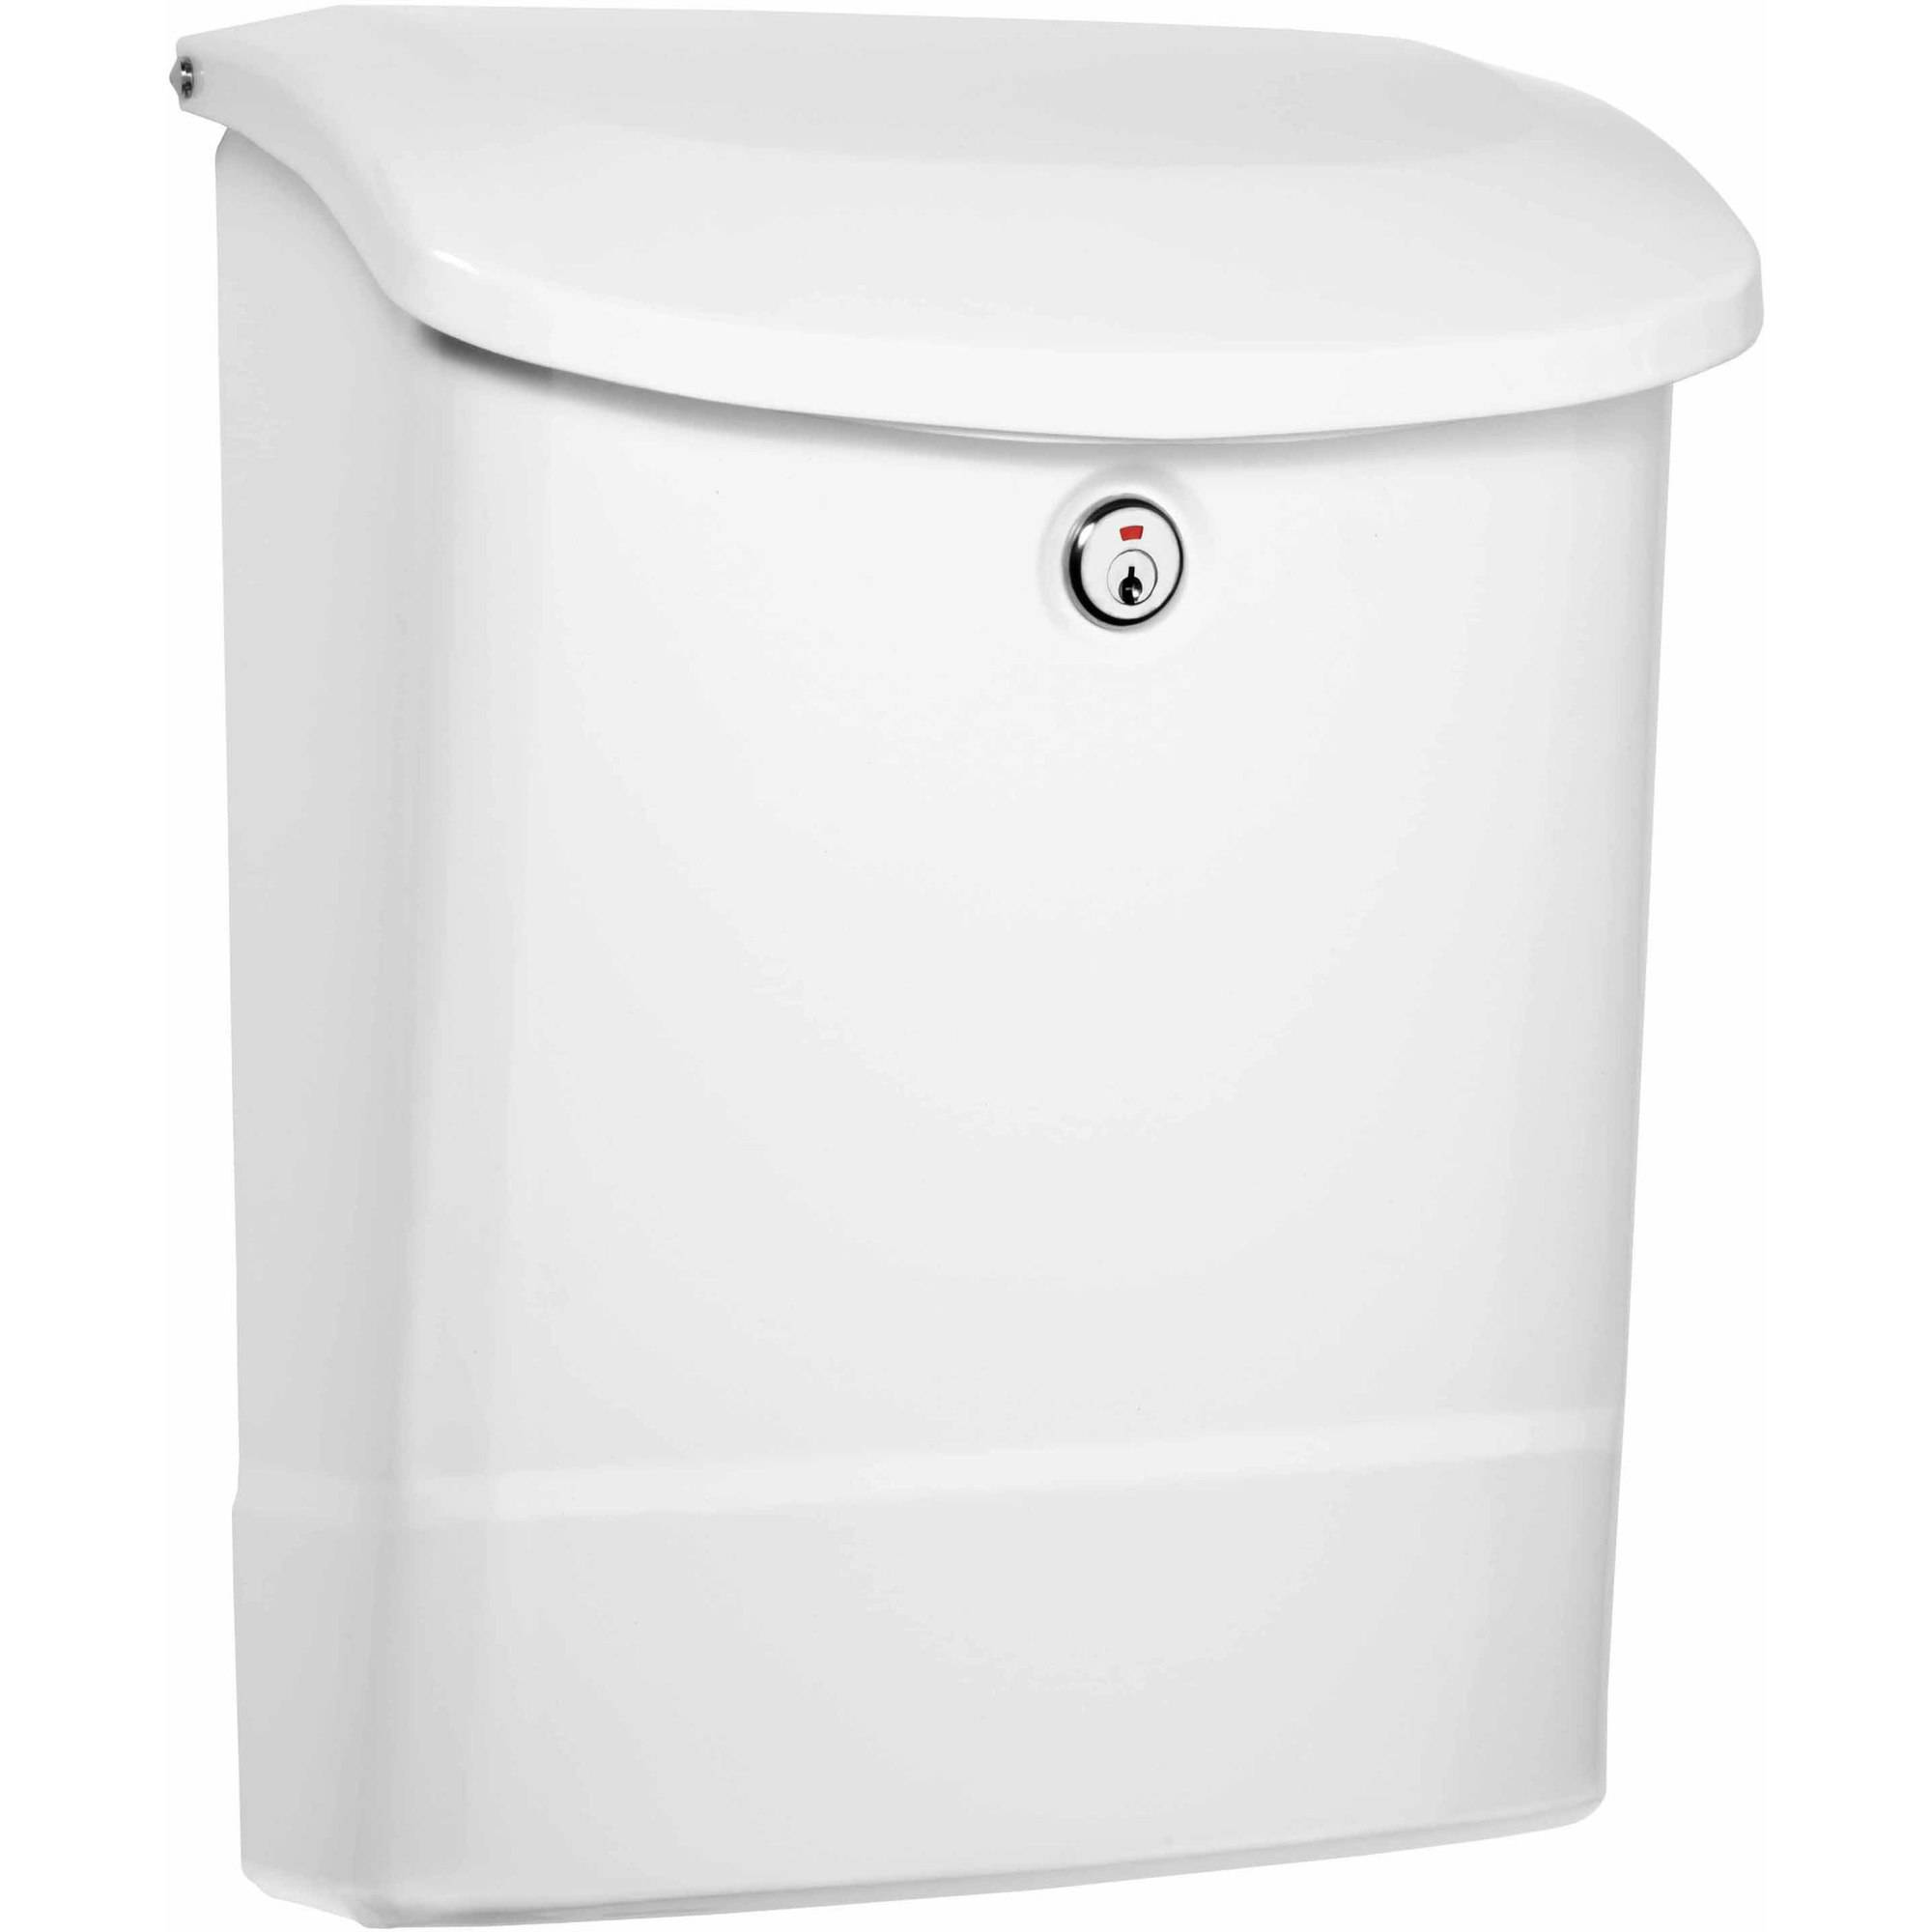 Architectural Mailboxes Parkside Locking Wall Mount Mailbox, White by Architectural Mailboxes